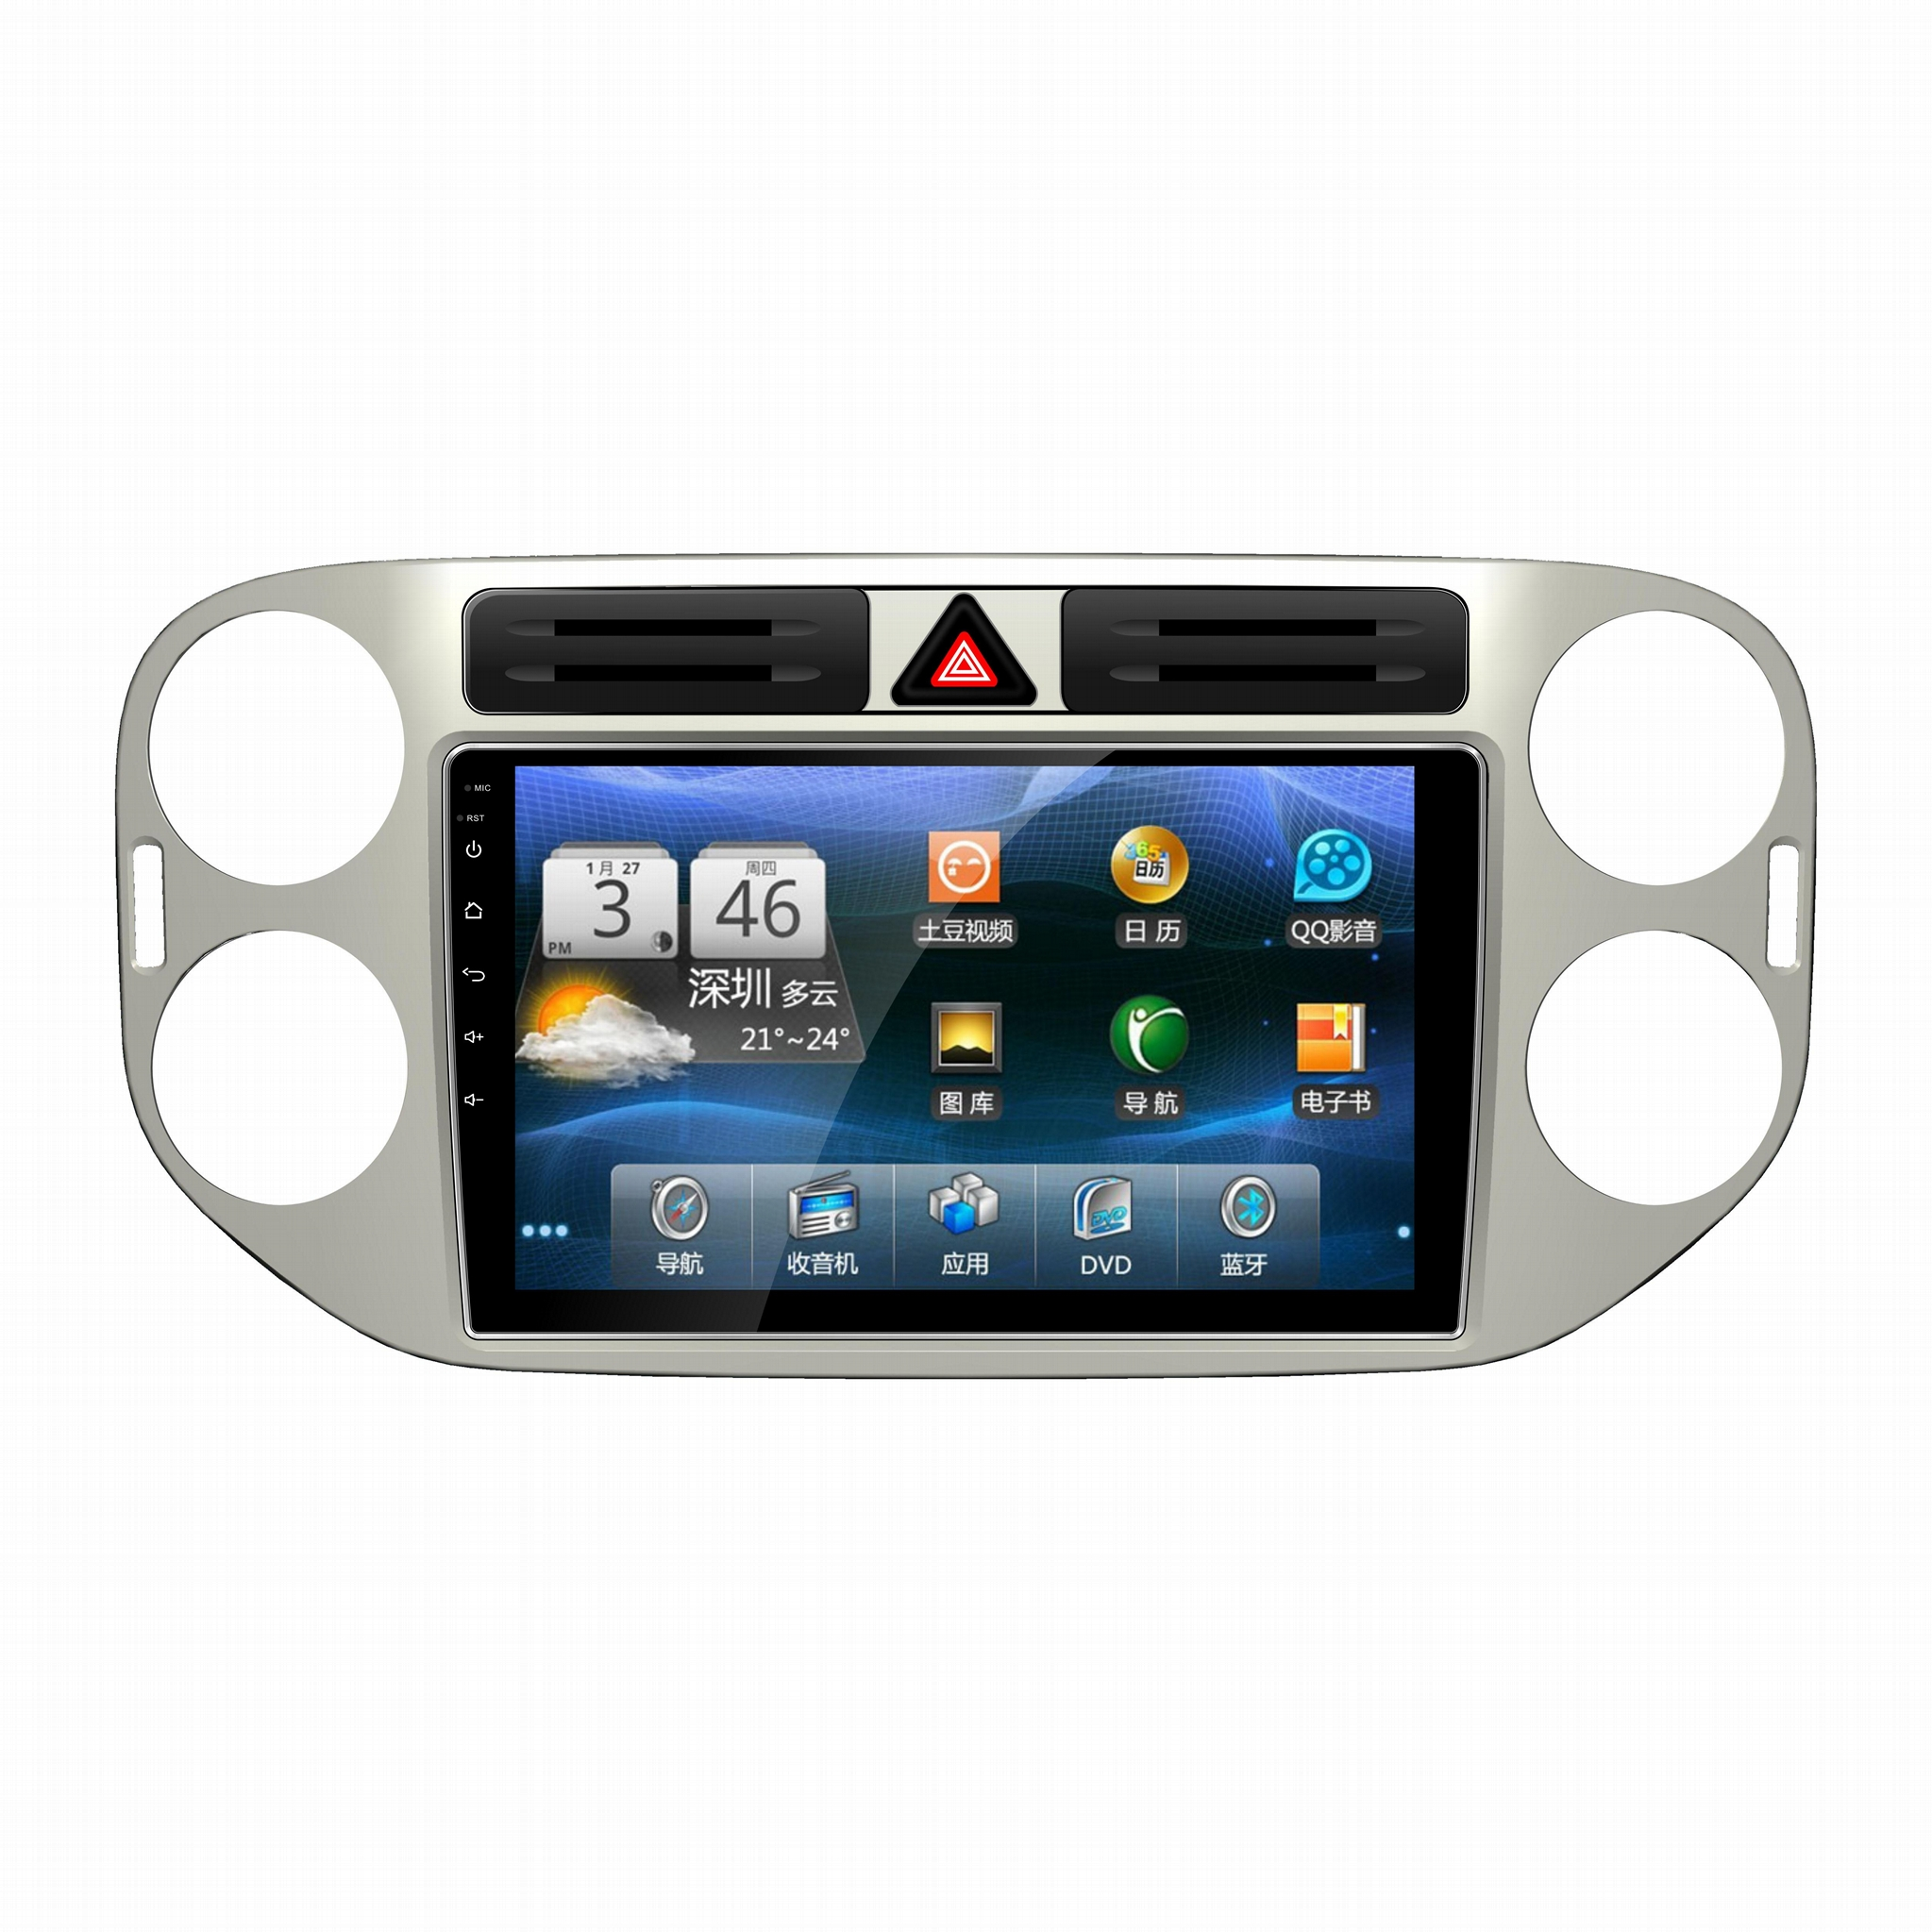 Android 6.0 10.1inch Car DVD for VW TIGUAN with GPS Navivbluetooth wifi 4G 1